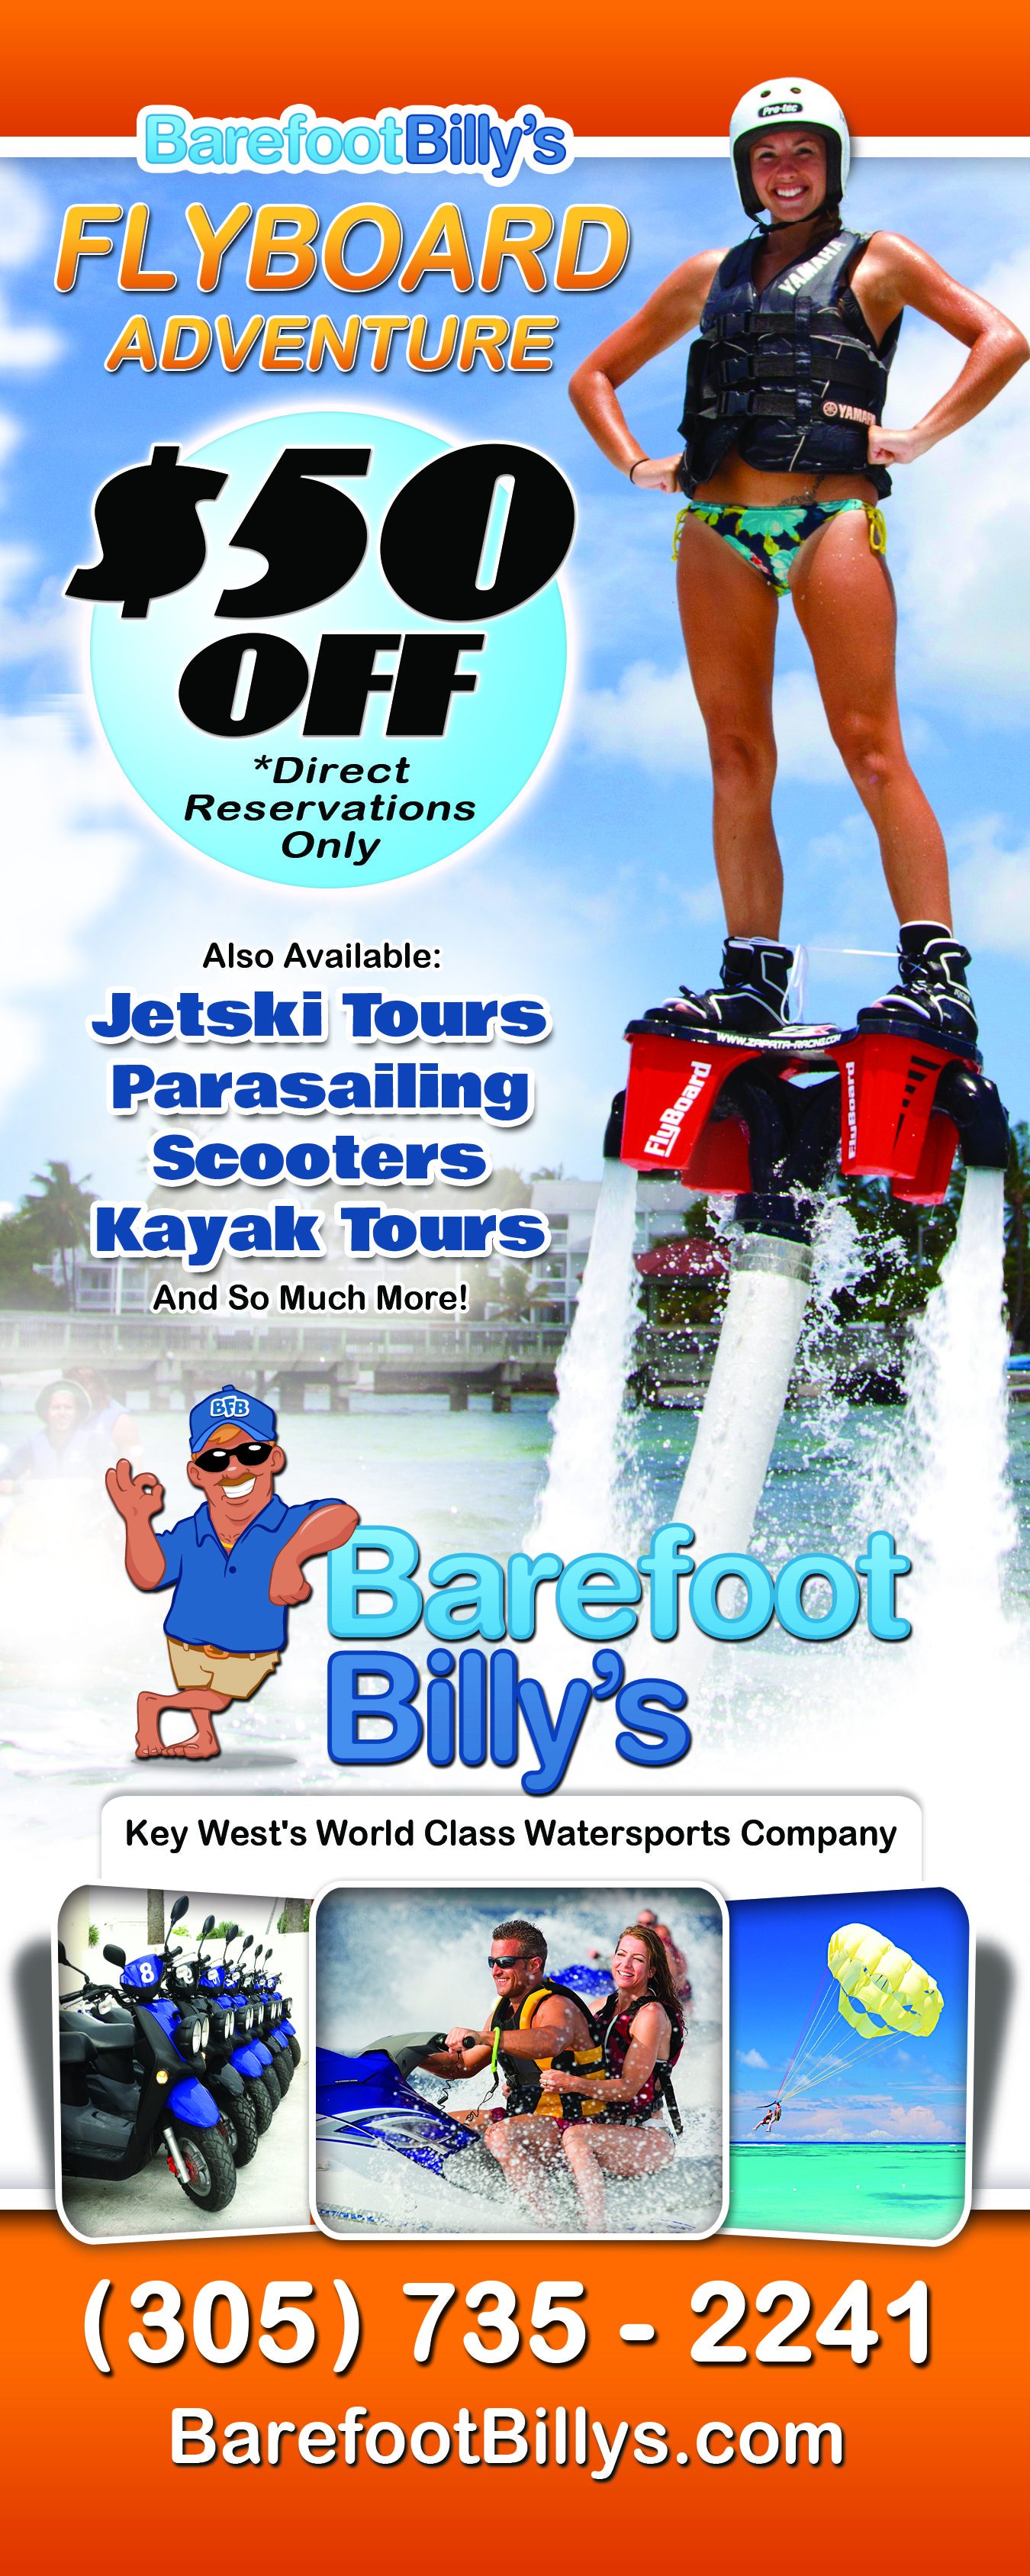 Barefoot Billy's, Key West